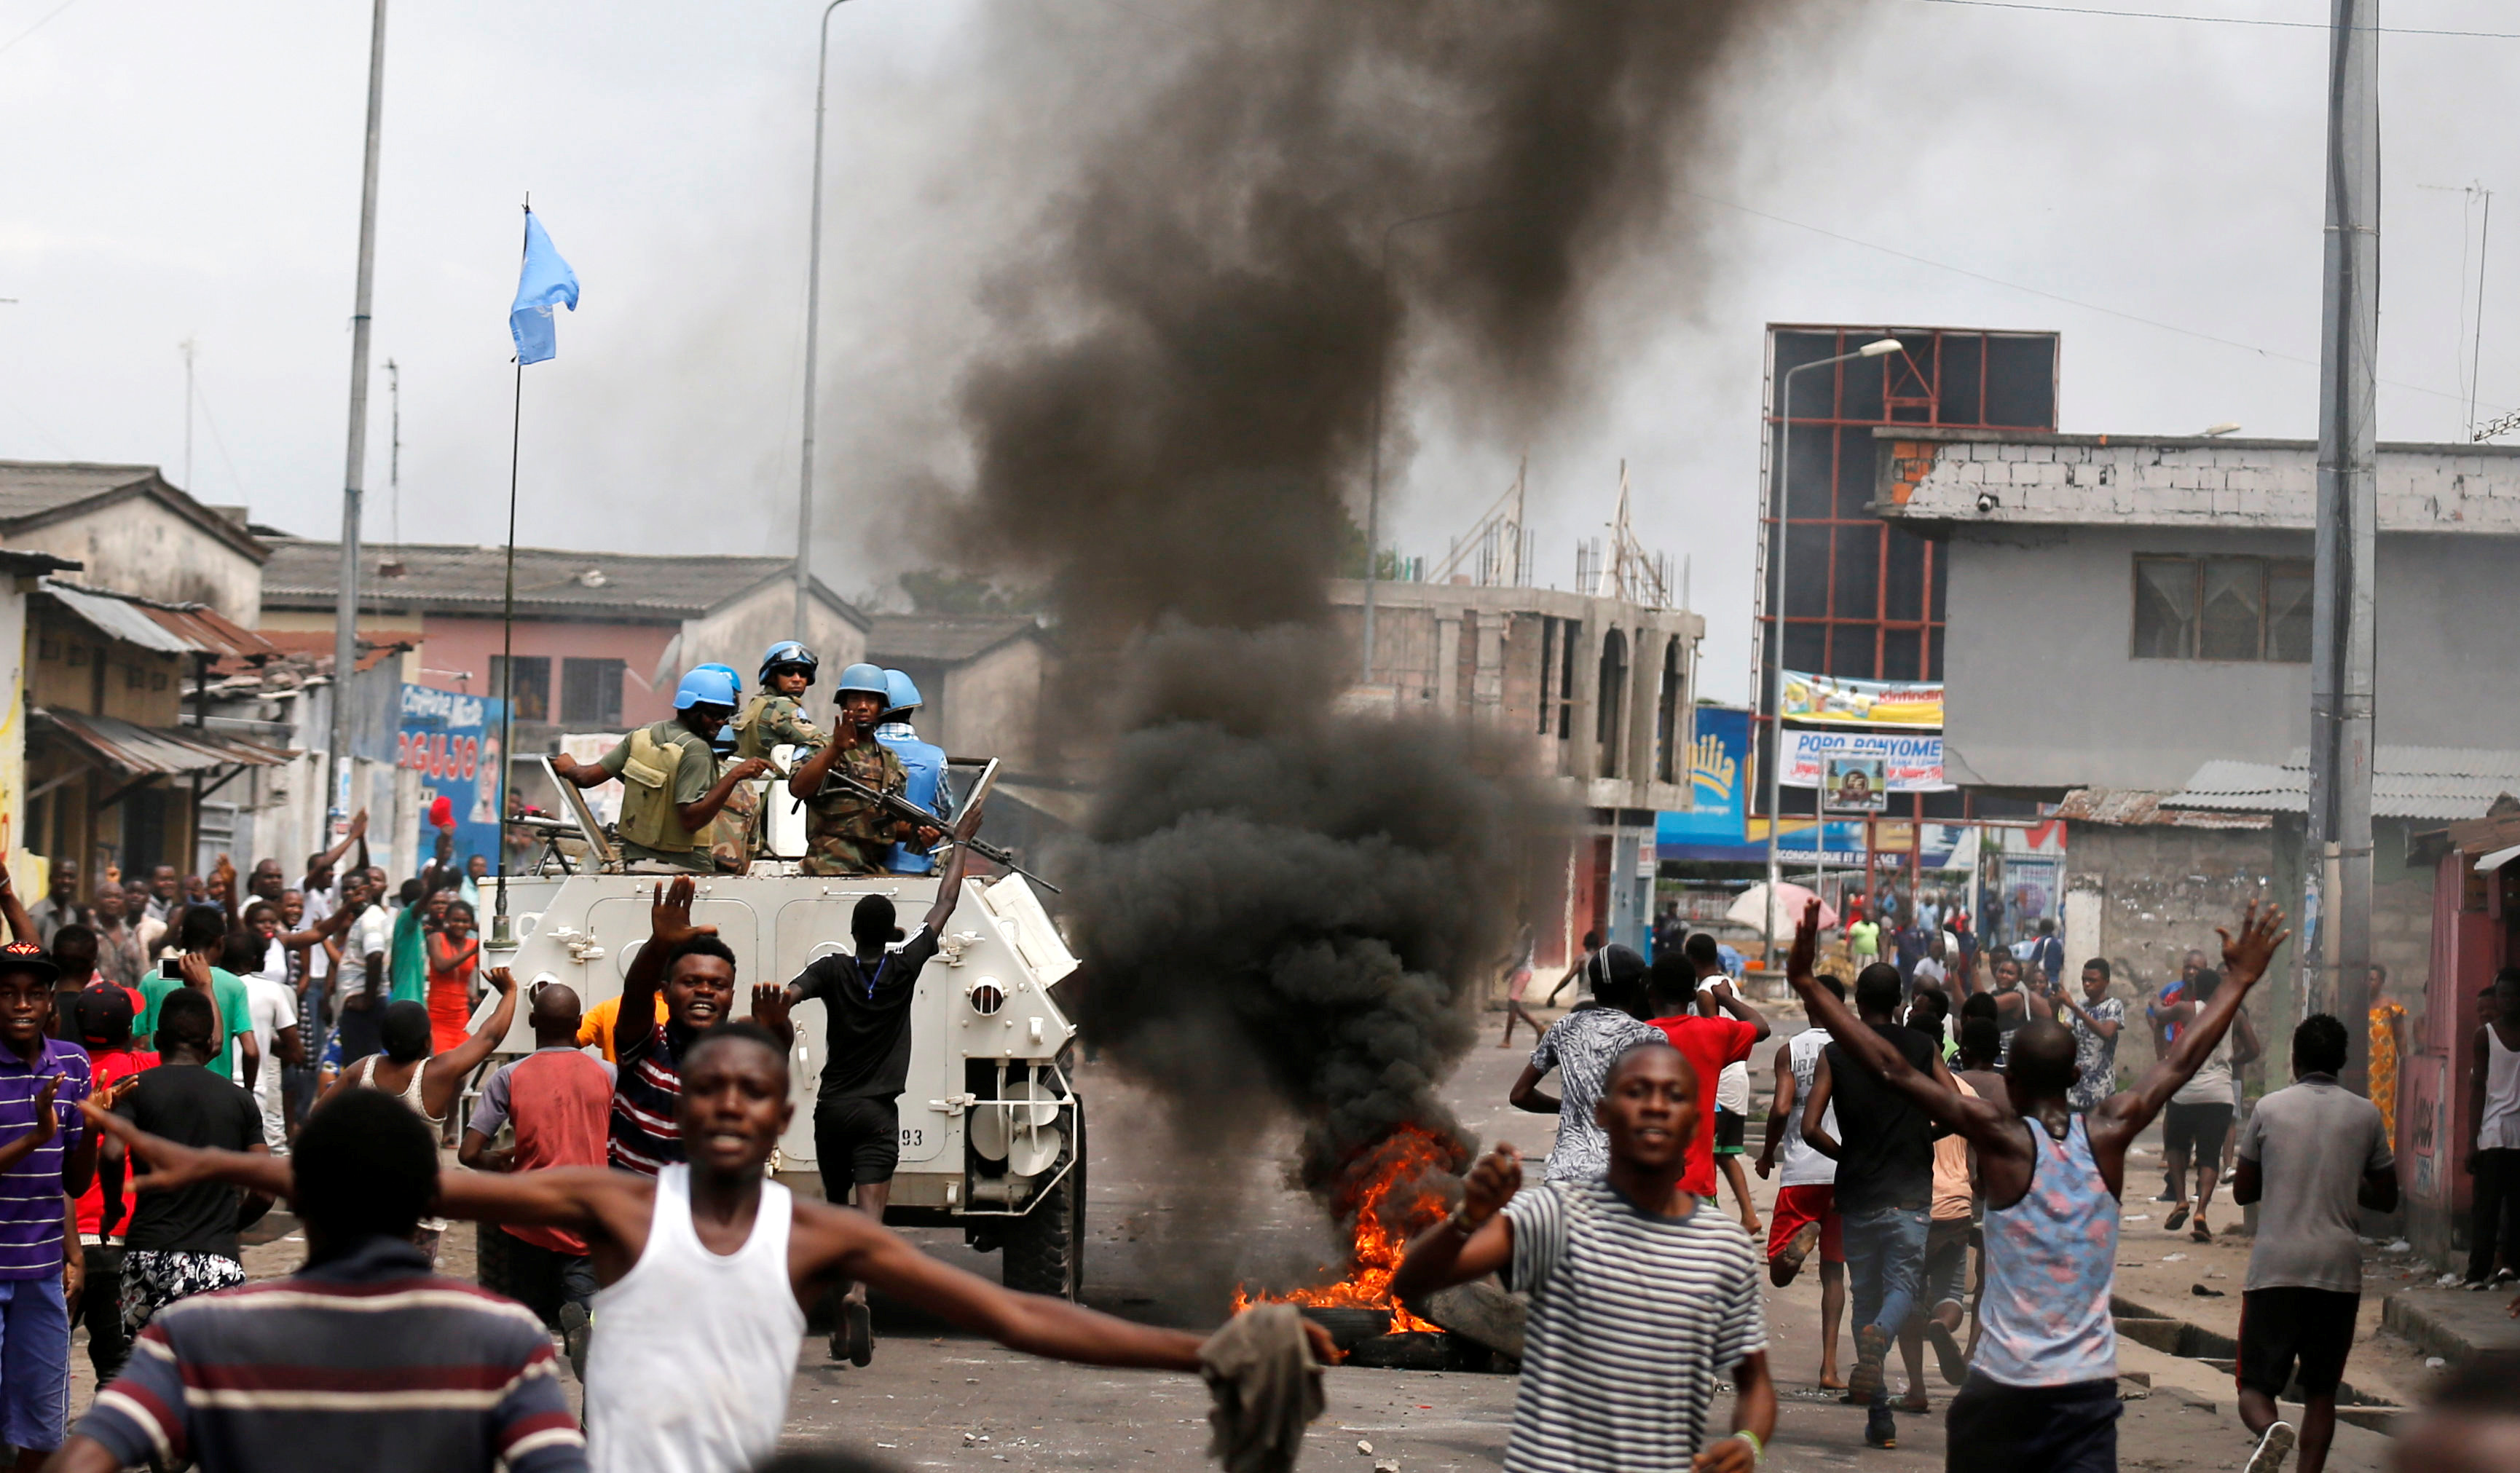 Residents chant slogans against Congolese President Joseph Kabila as peacekeepers serving in the United Nations Organization Stabilization Mission in the Democratic Republic of the Congo (MONUSCO) patrol during demonstrations in the streets of the Democratic Republic of Congo's capital Kinshasa, December 20, 2016. REUTERS/Thomas Mukoya - RTX2VU37